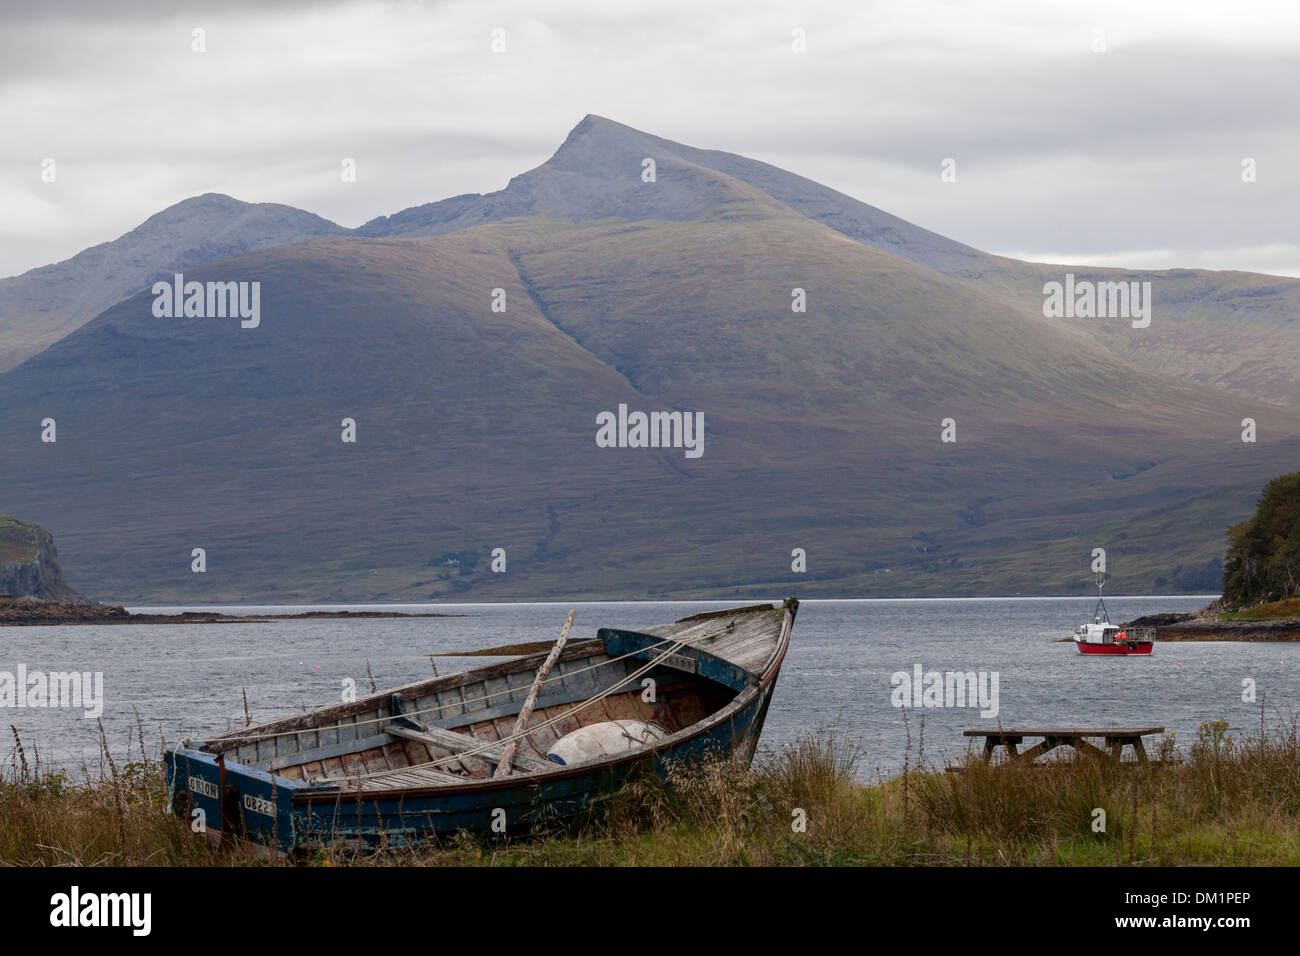 Ben More mountain on the isle of Mull, viewed from the small island of Ulva. - Stock Image